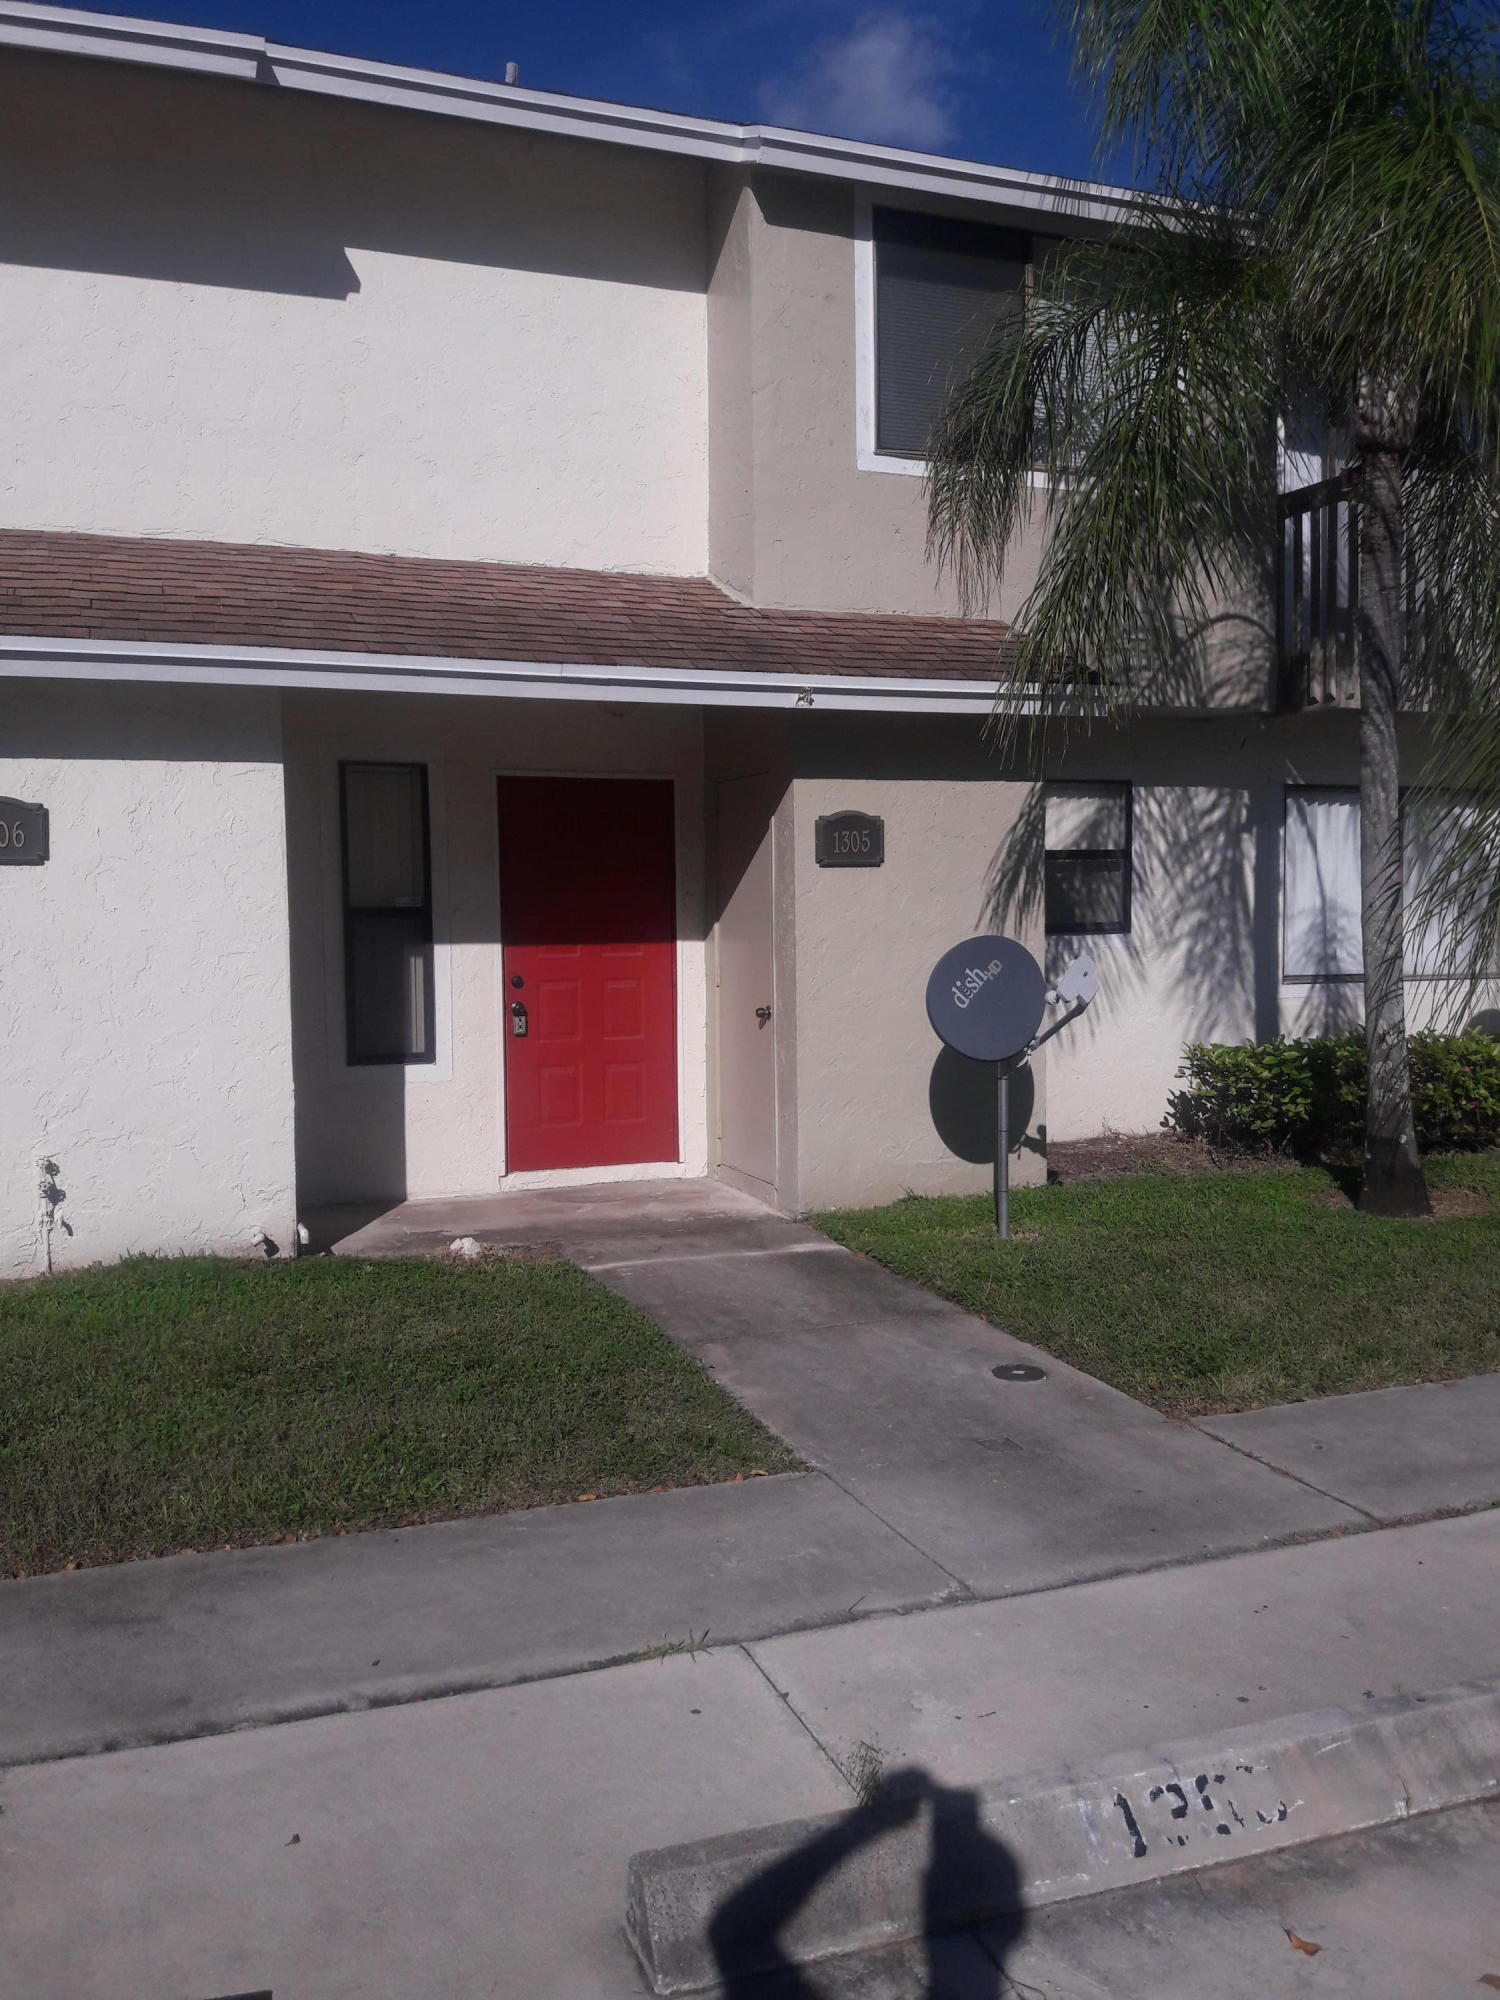 Home for sale in Canalake Lake Worth Florida